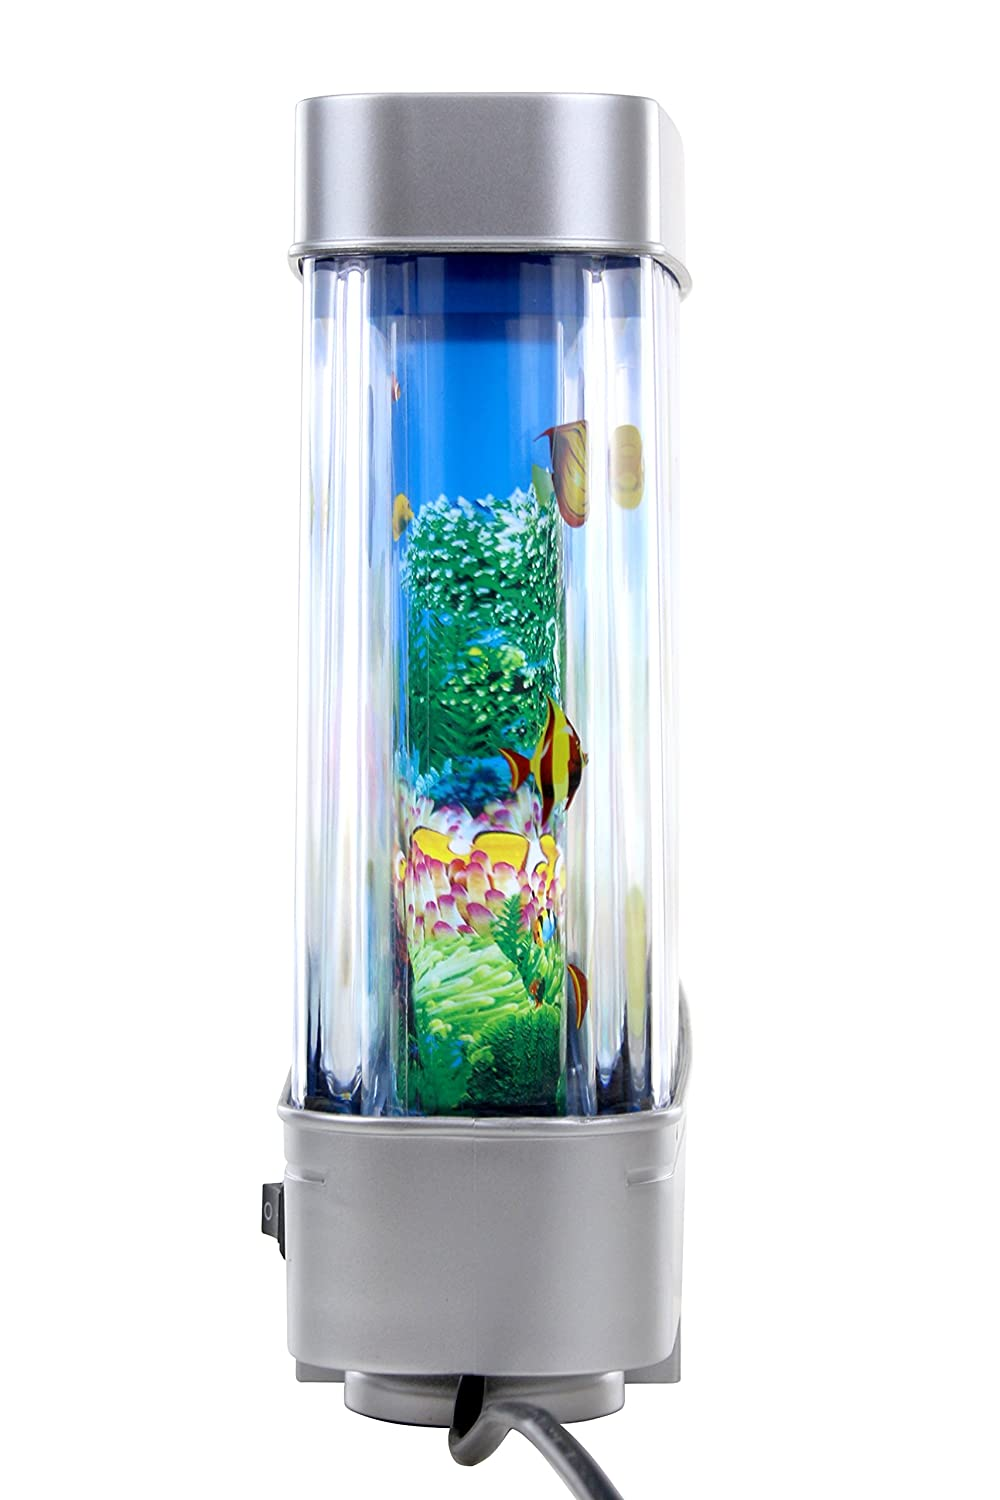 Amazon.com : Lightahead Artificial Tropical Fish Aquarium Decorative ...